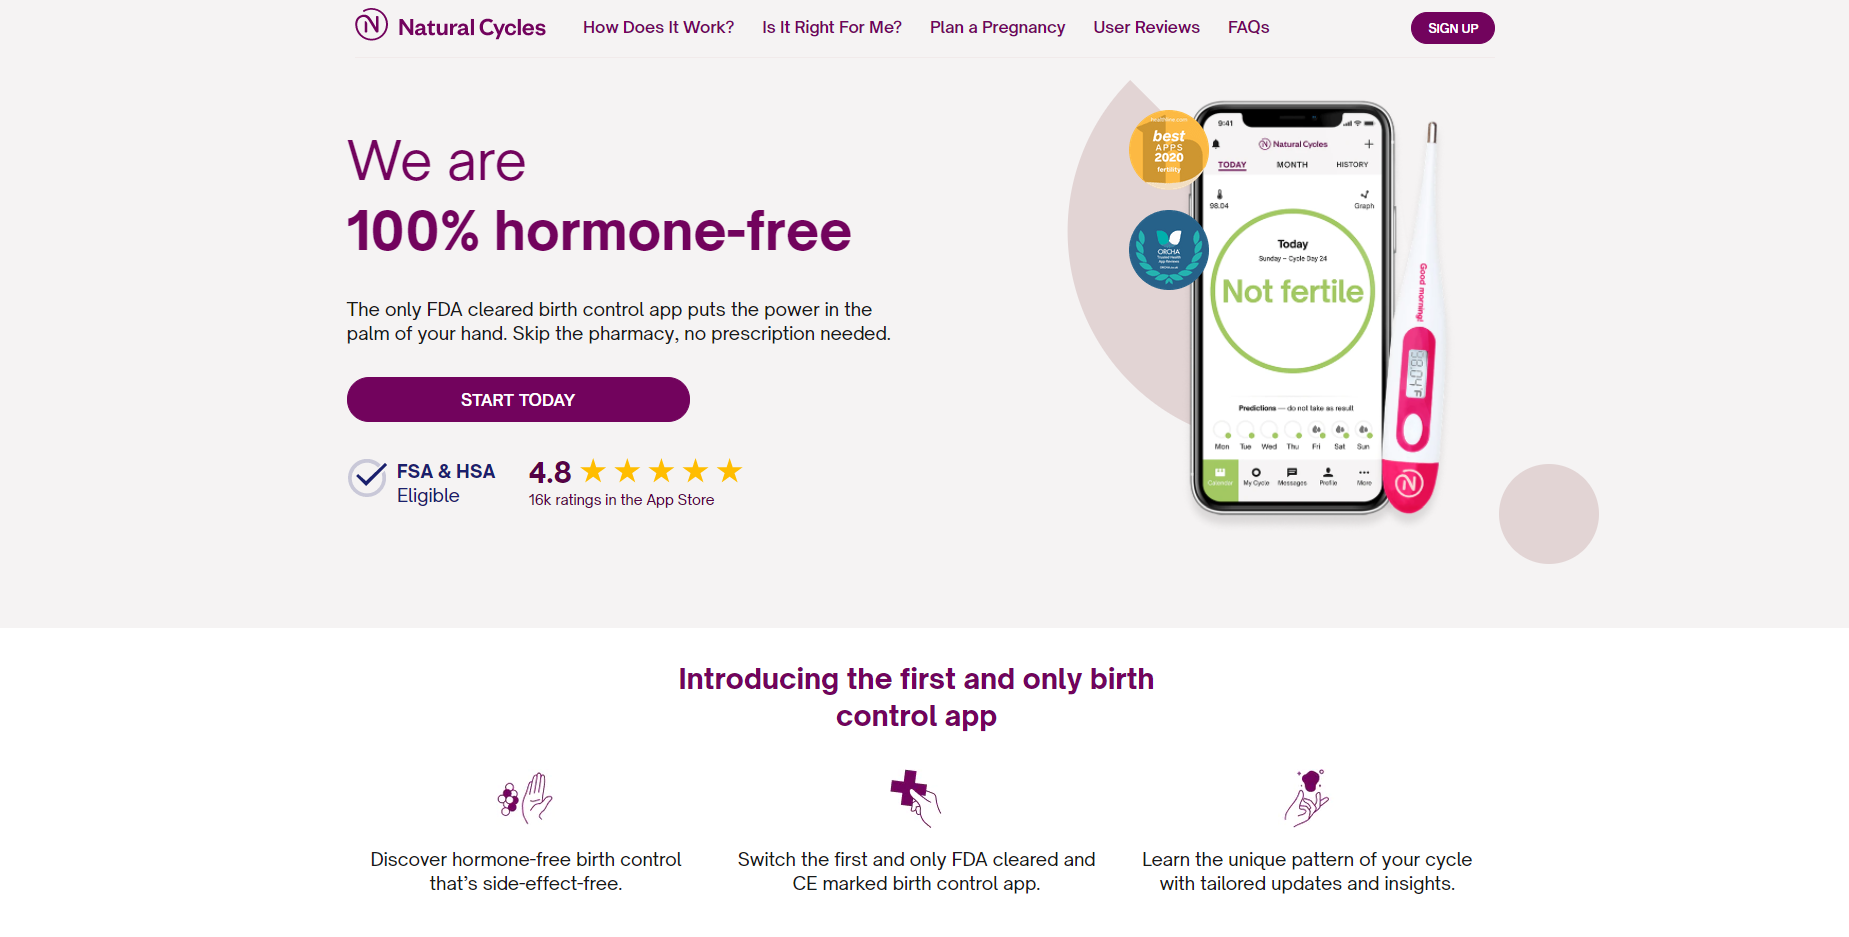 Get 25% off annual subscription to Natural Cycles birth control app, plus a free basal thermometer